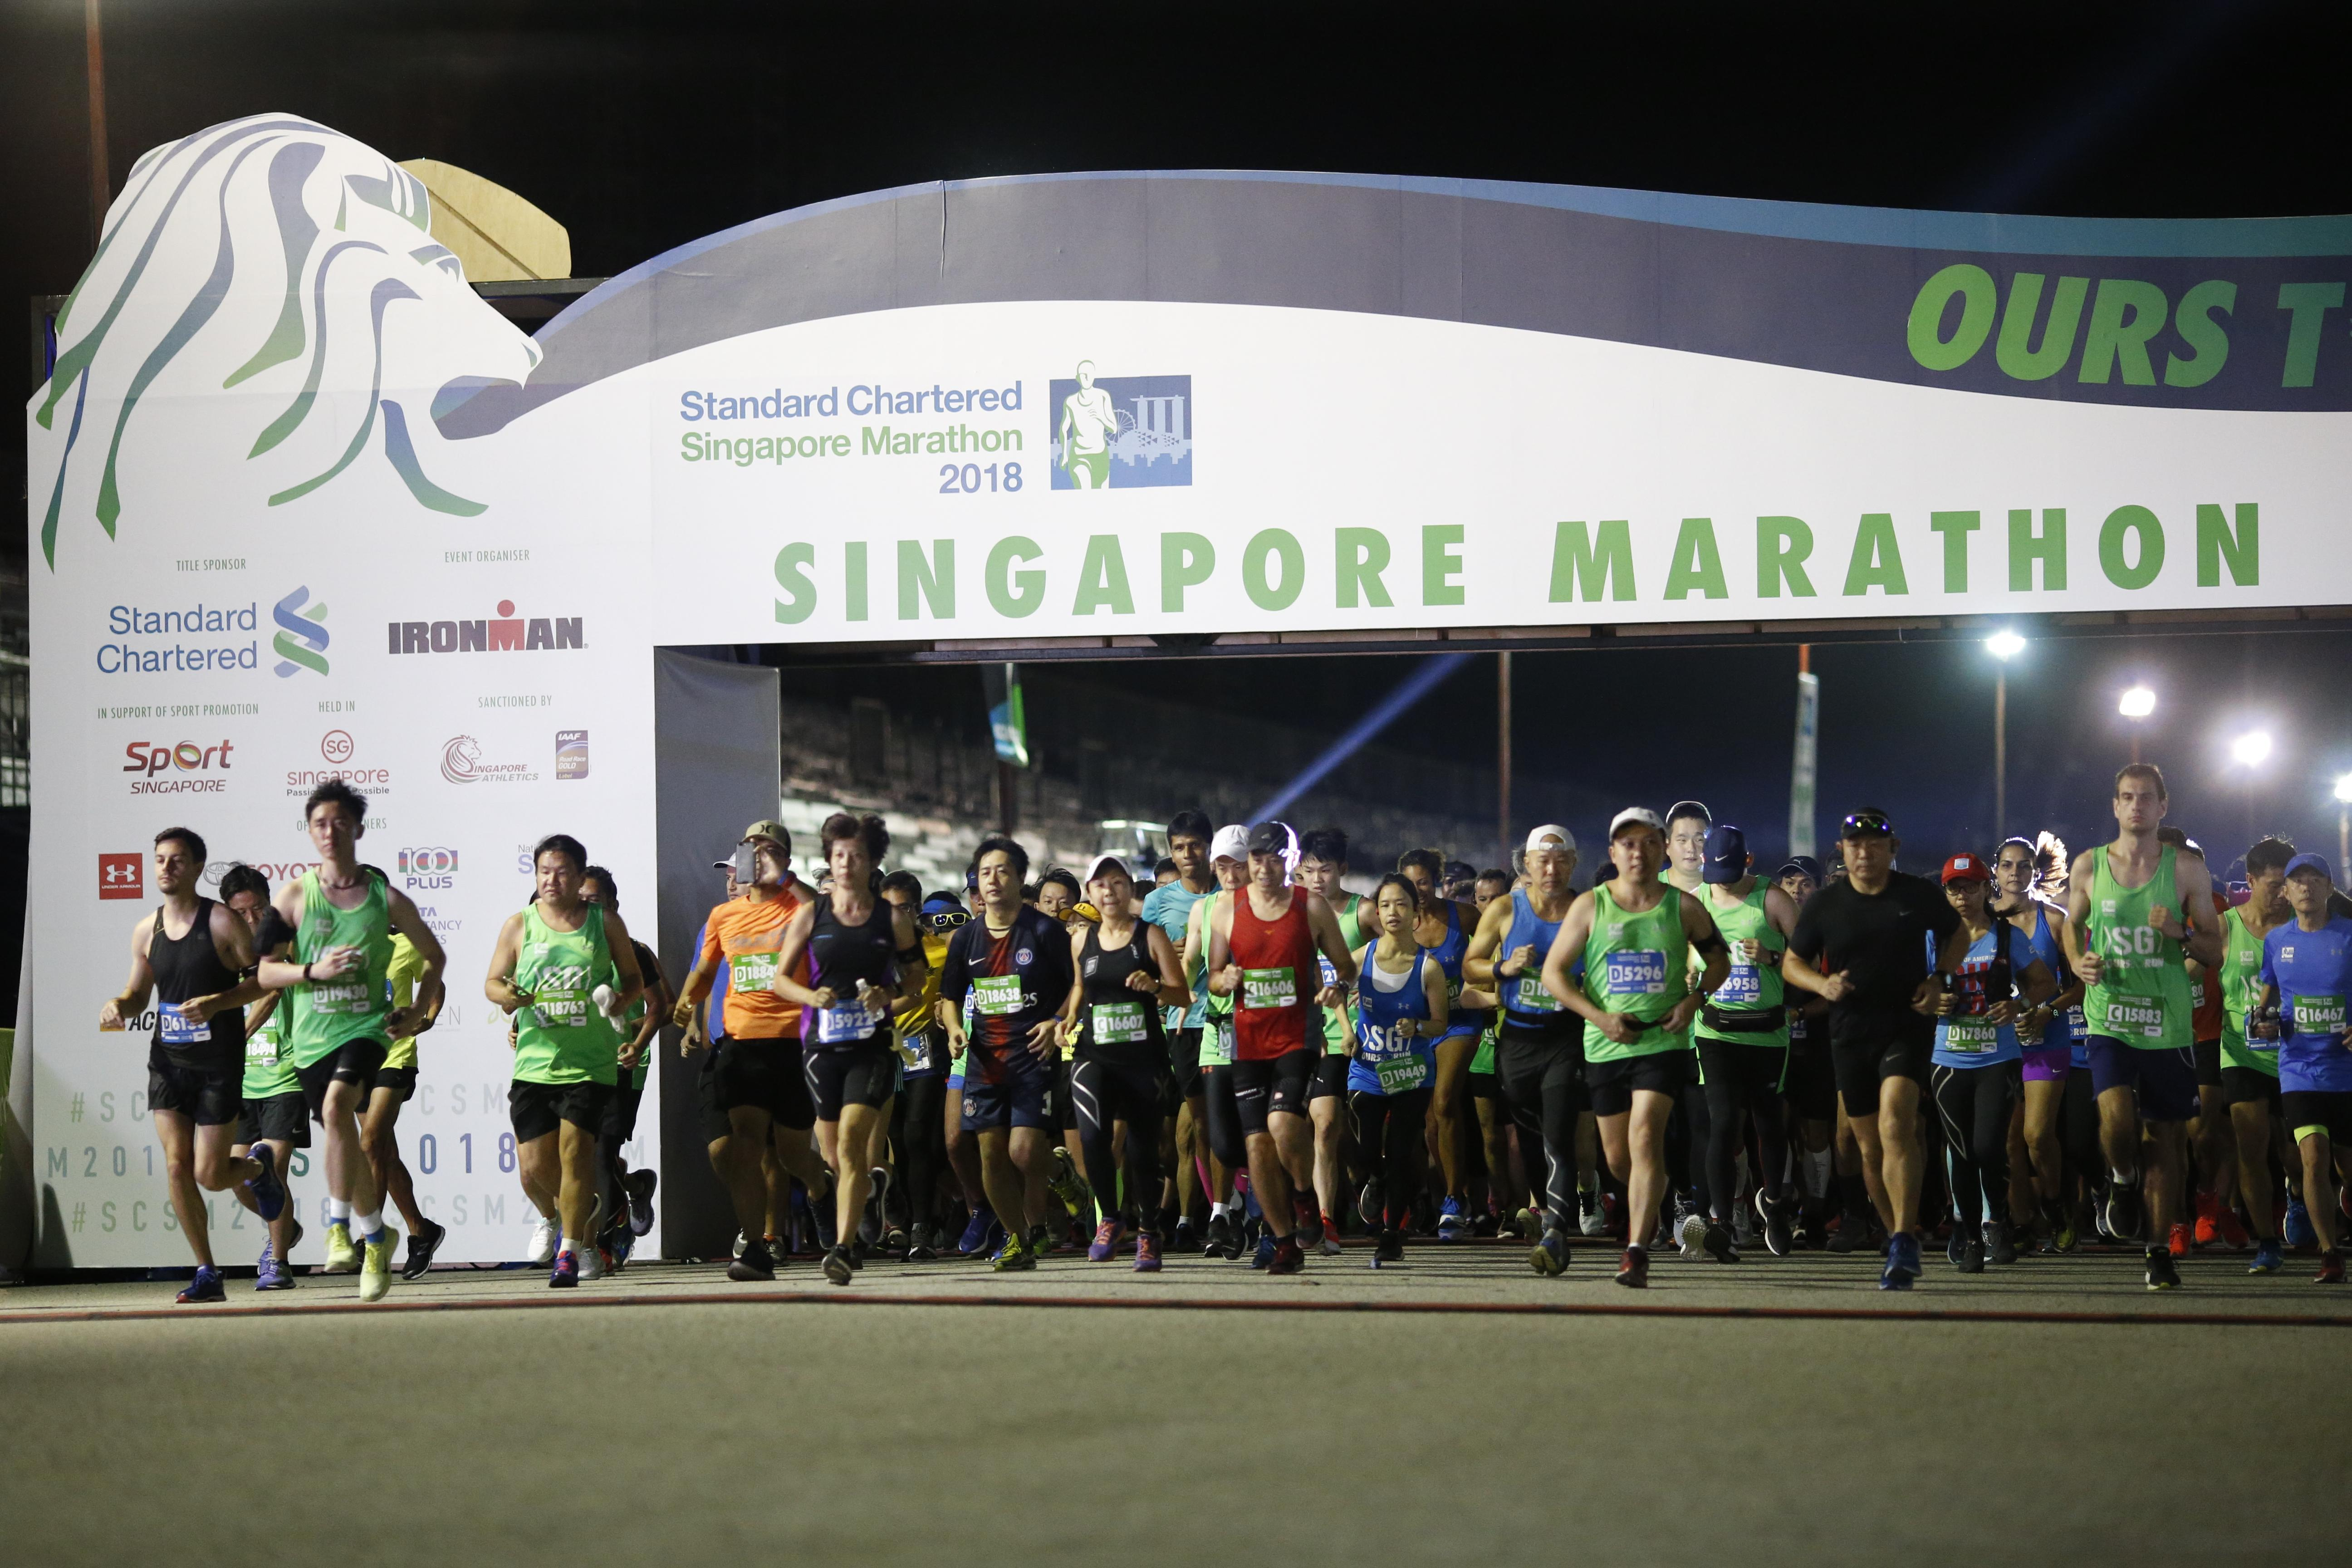 StanChart Marathon organisers promise better race route experience in 2019